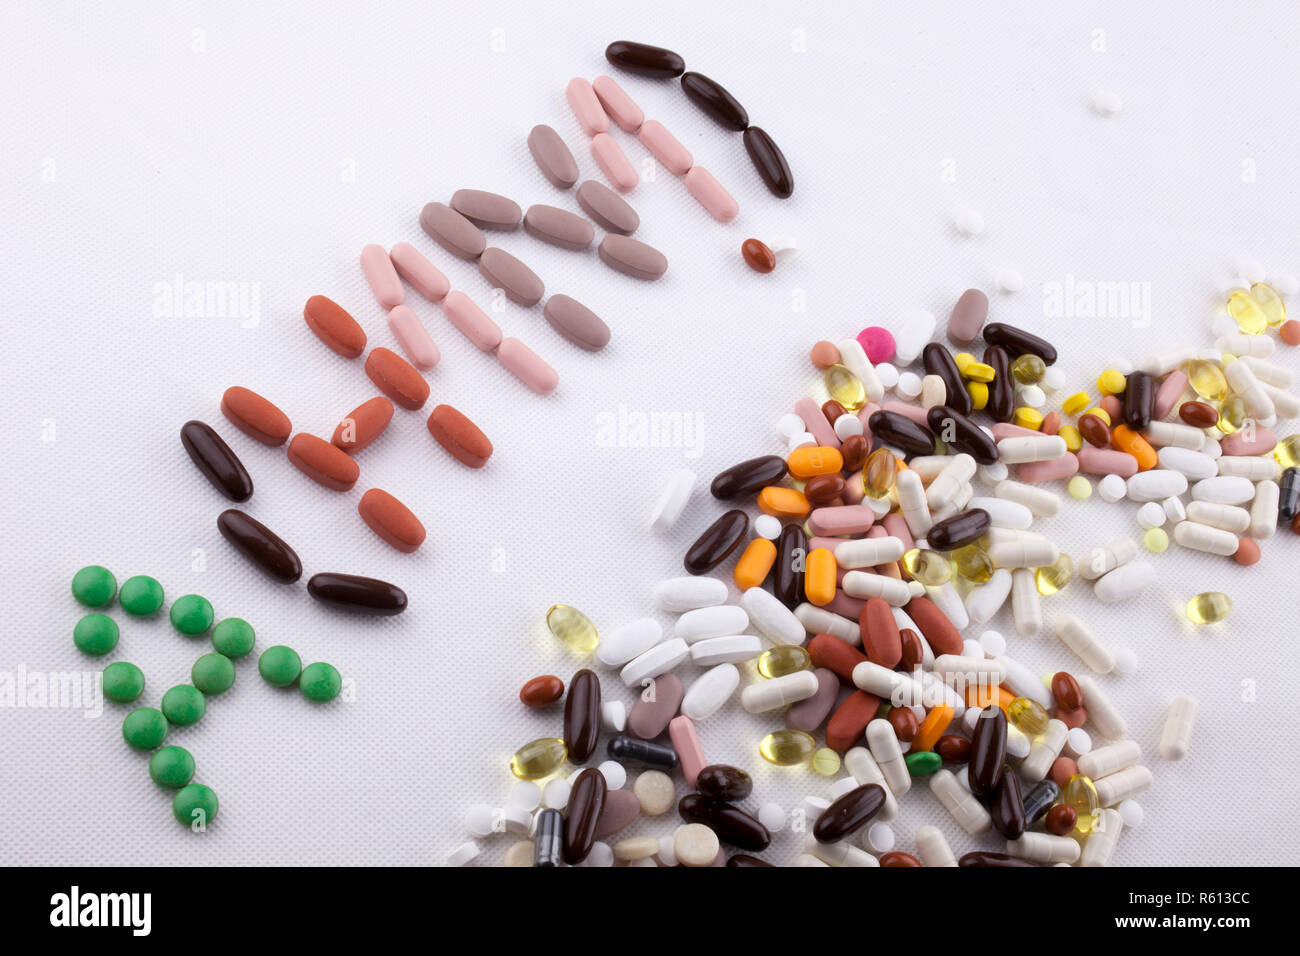 Hand writing text caption inspiration Medical care Health concept written with pills drugs capsule word ah1n1 On white isolated background with copy space - Stock Image